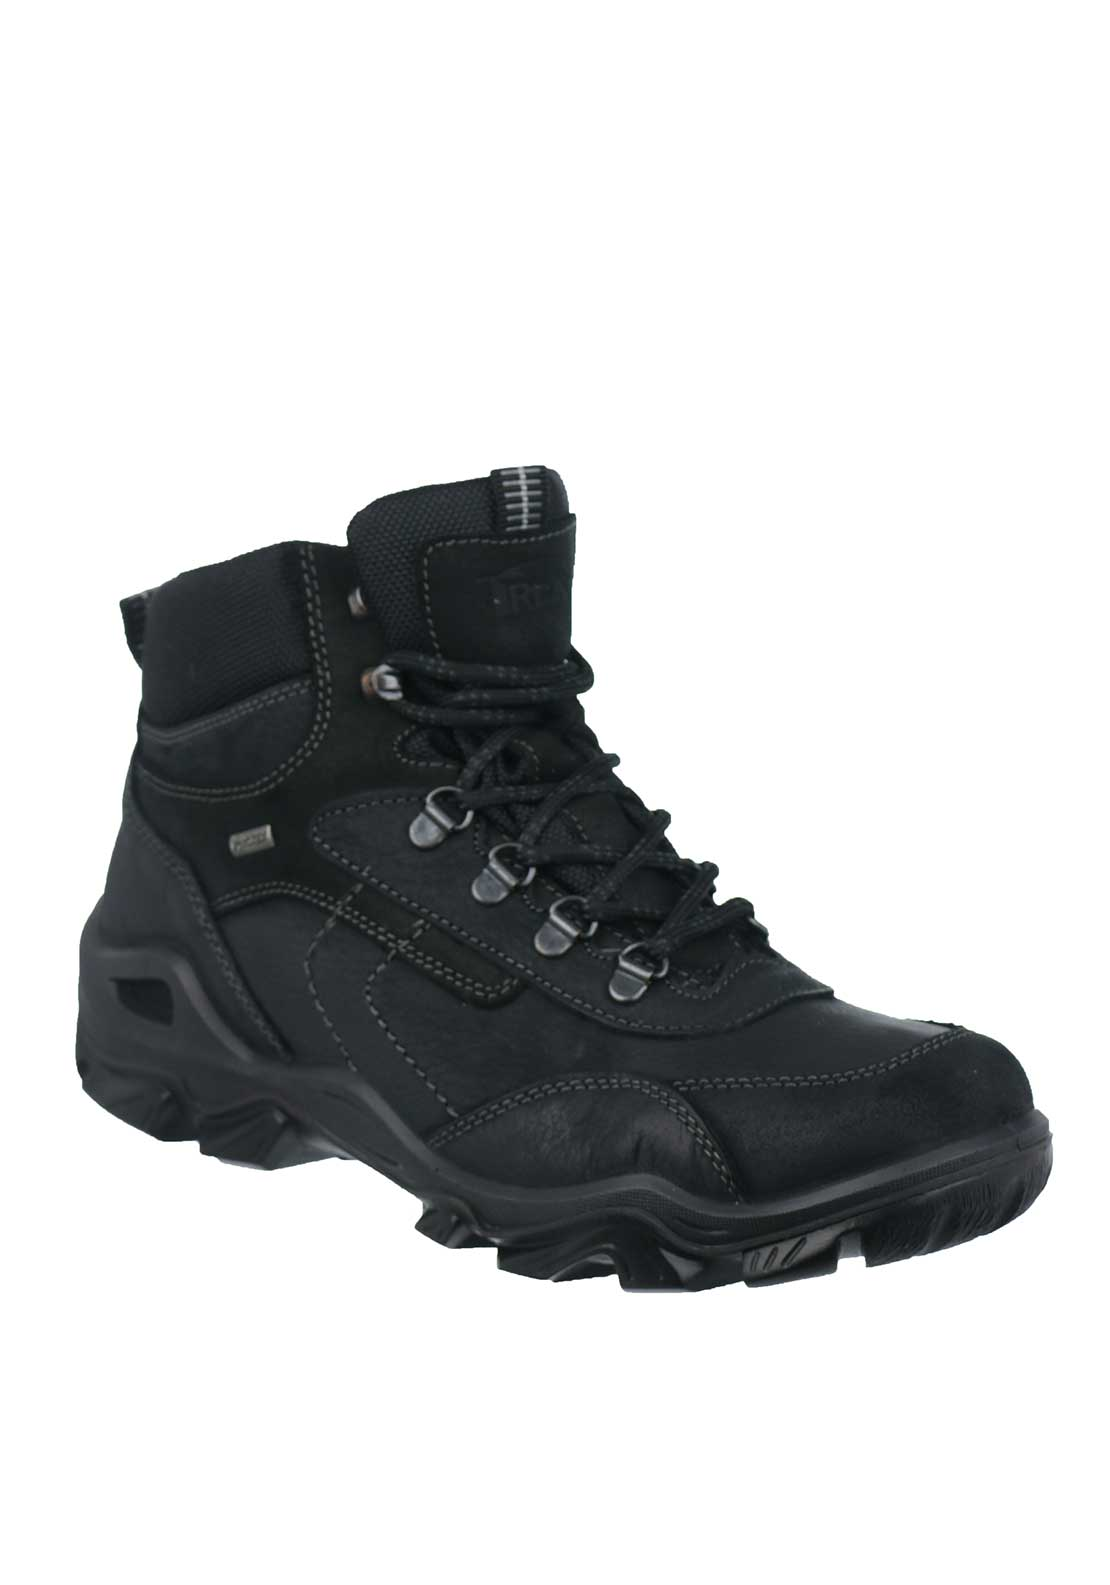 IMAC Mens Leather Mid Trek Waterproof Lace Up Comfort Fit Boots, Black